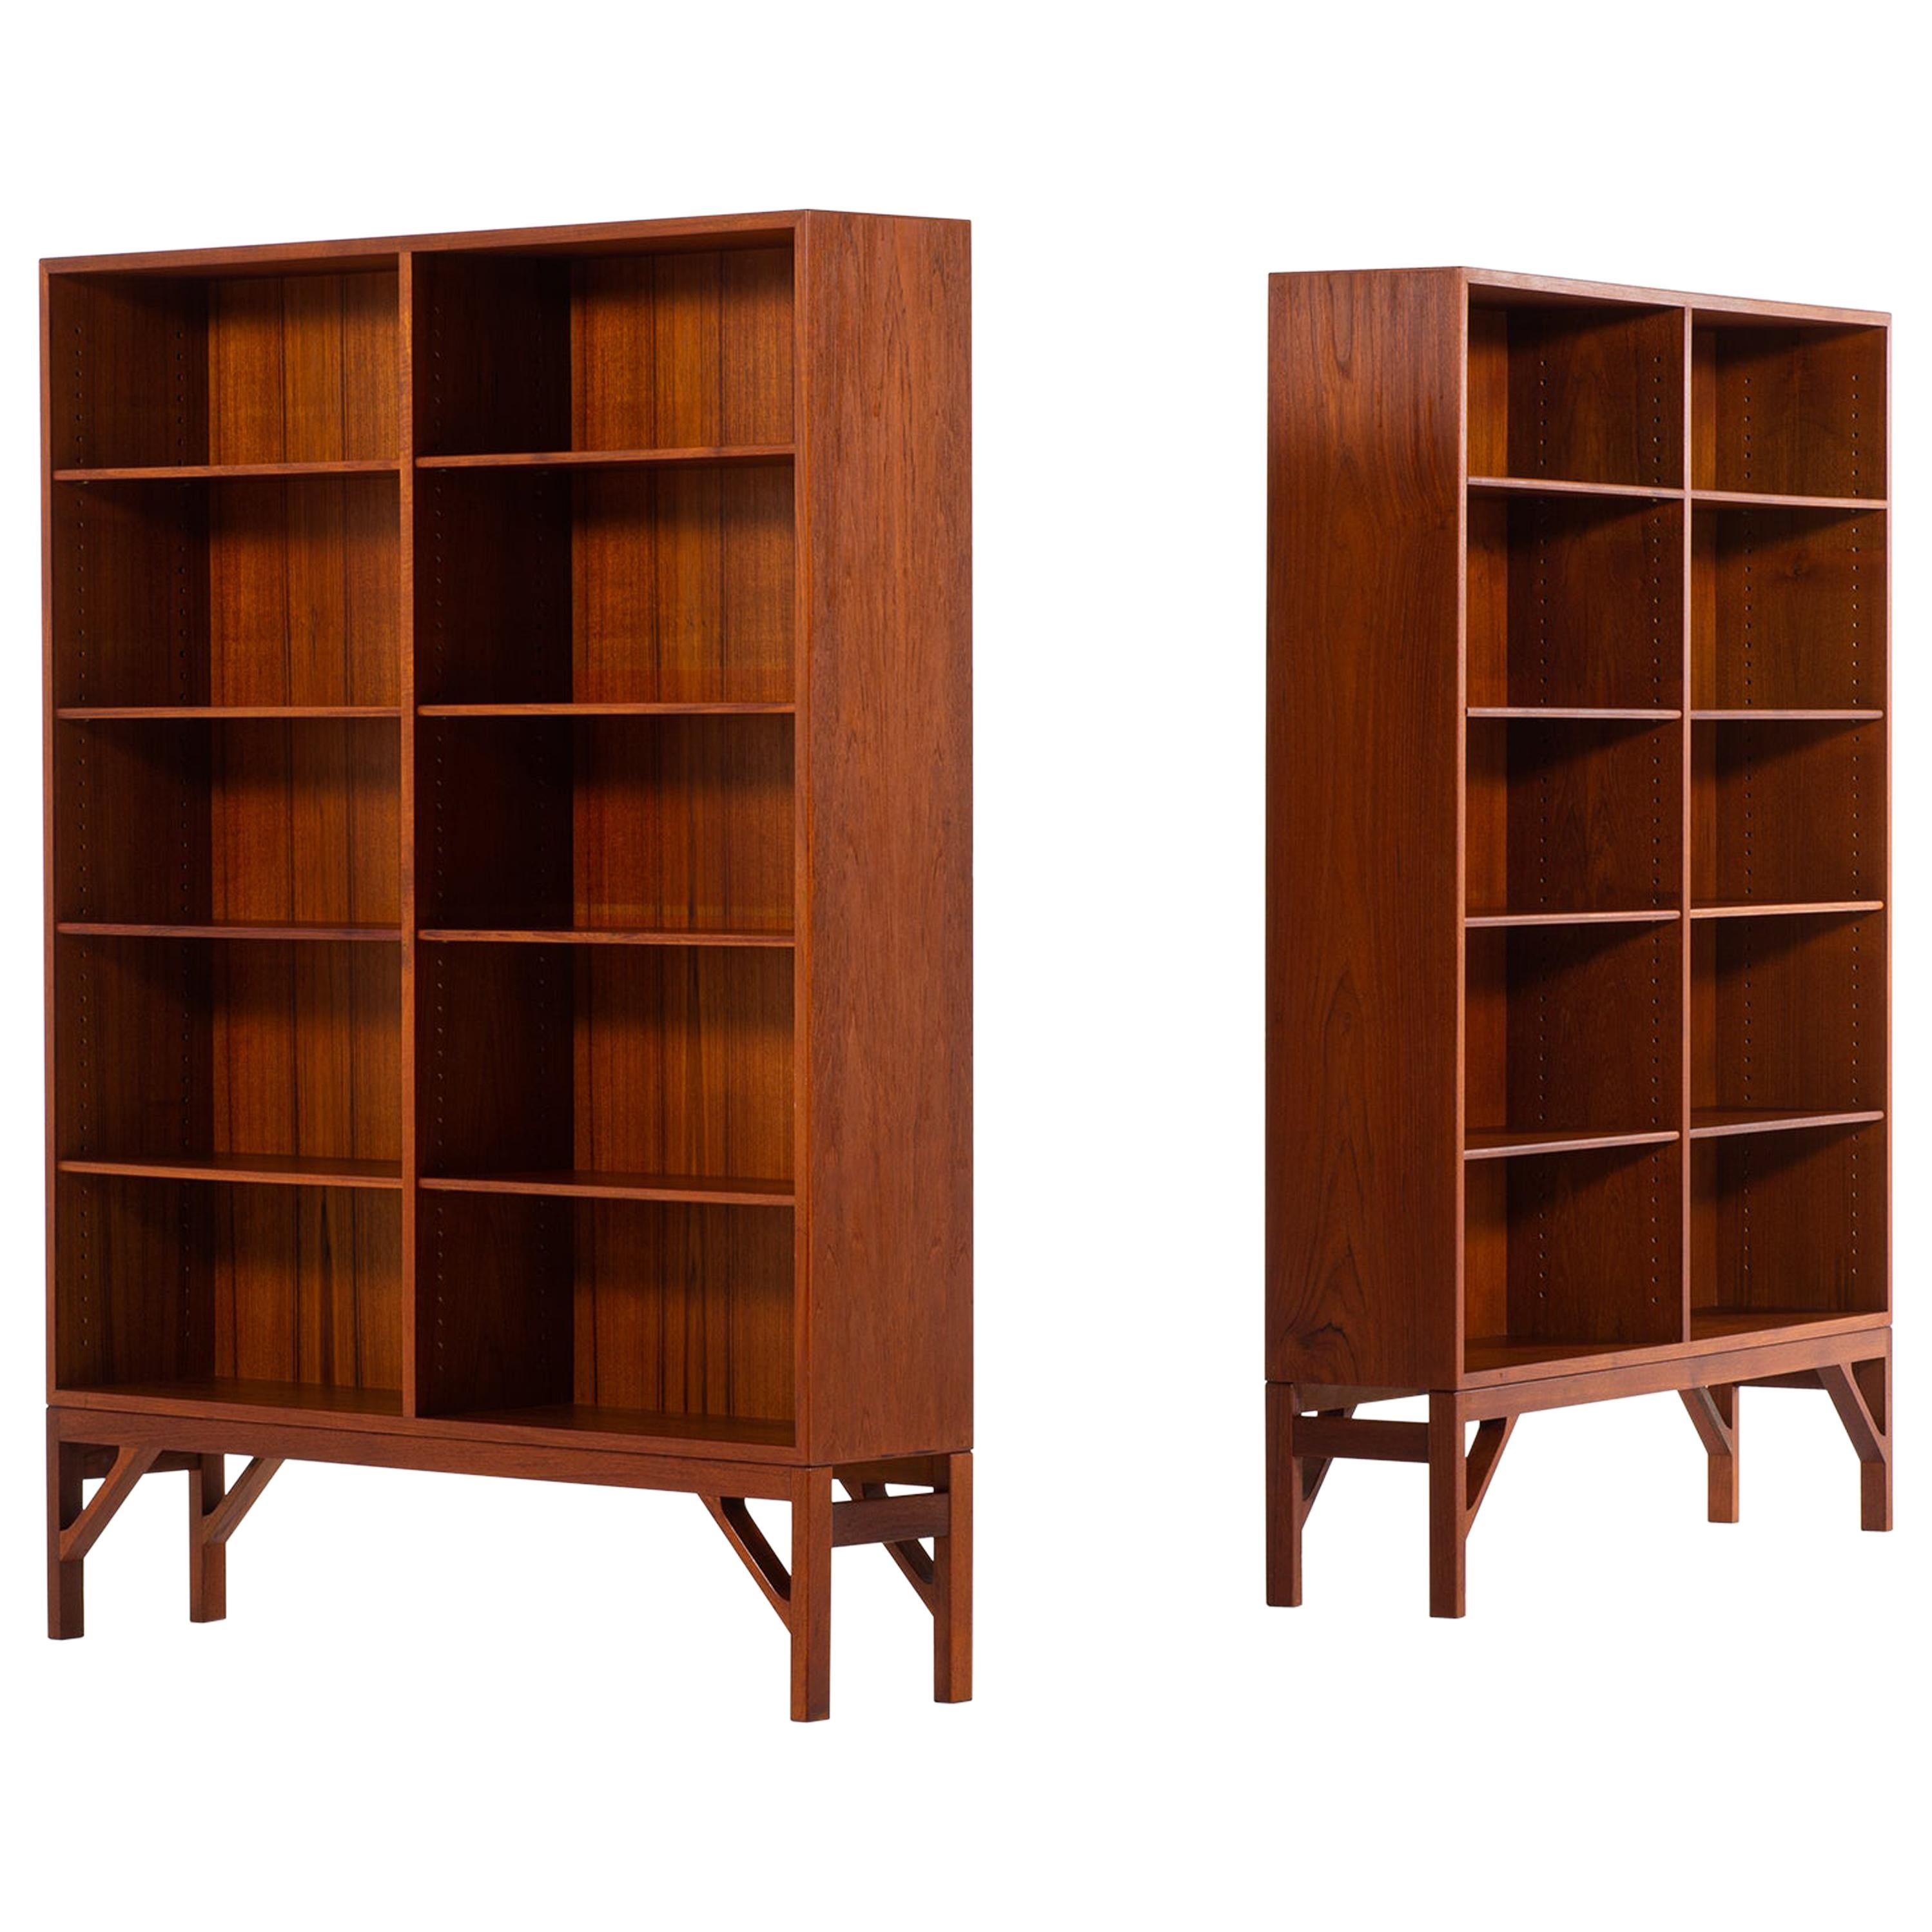 Børge Mogensen Bookcases Produced by C.M. Madsen in Denmark